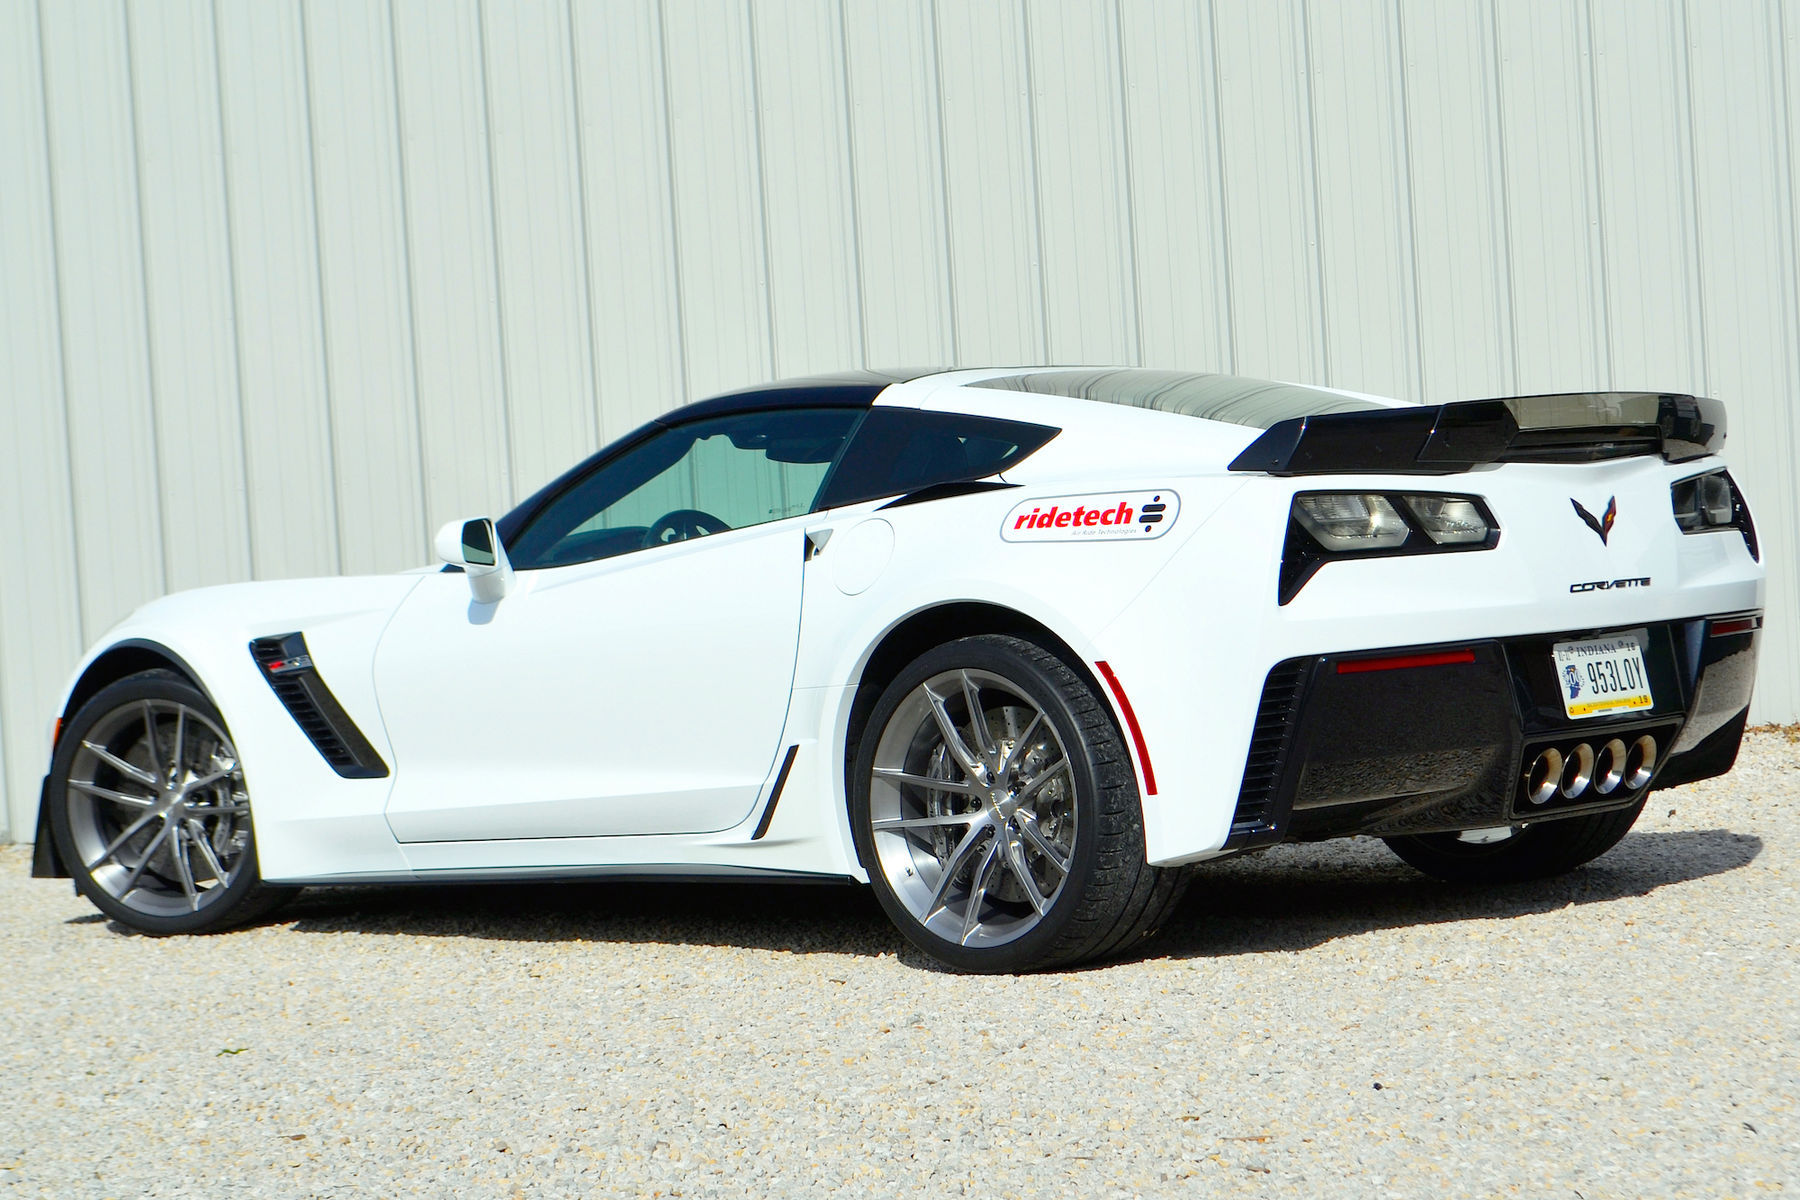 2015 Chevrolet Corvette Z06 | C7 Z06 on Forgeline AR1 Wheels